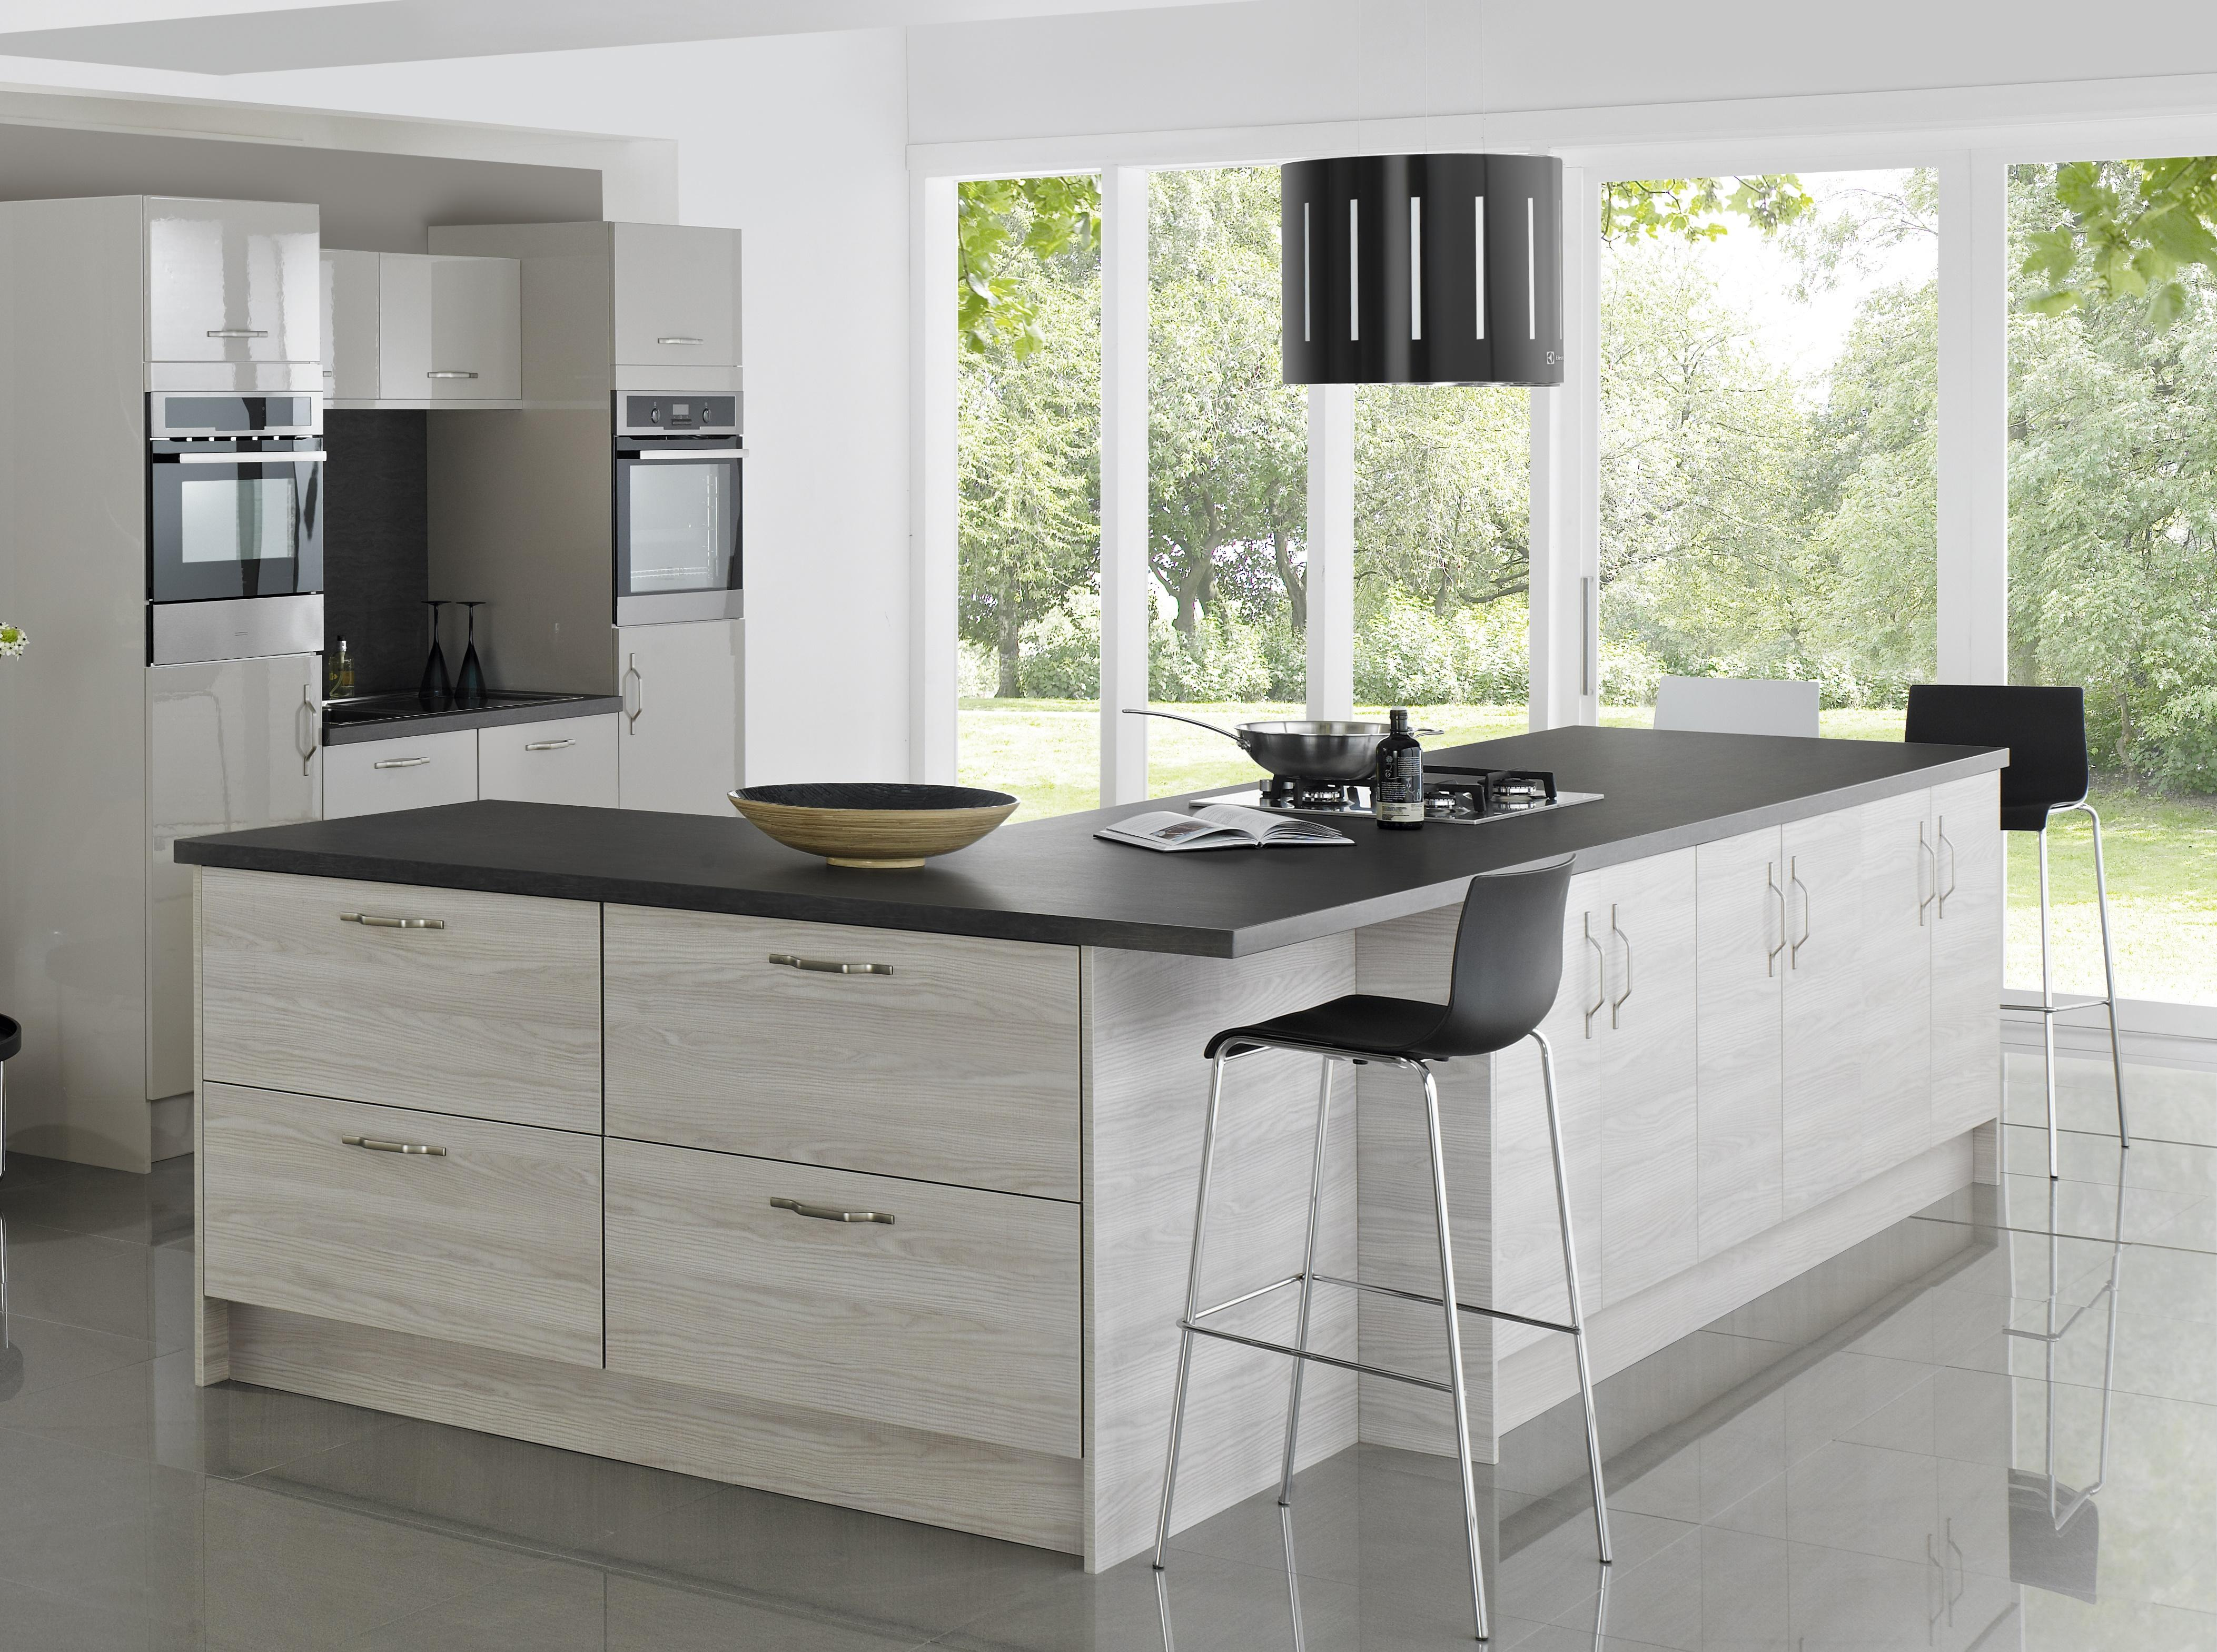 Bettinsons Kitchens Modern Kitchen Designs Kansas and Woodbury Cashmere